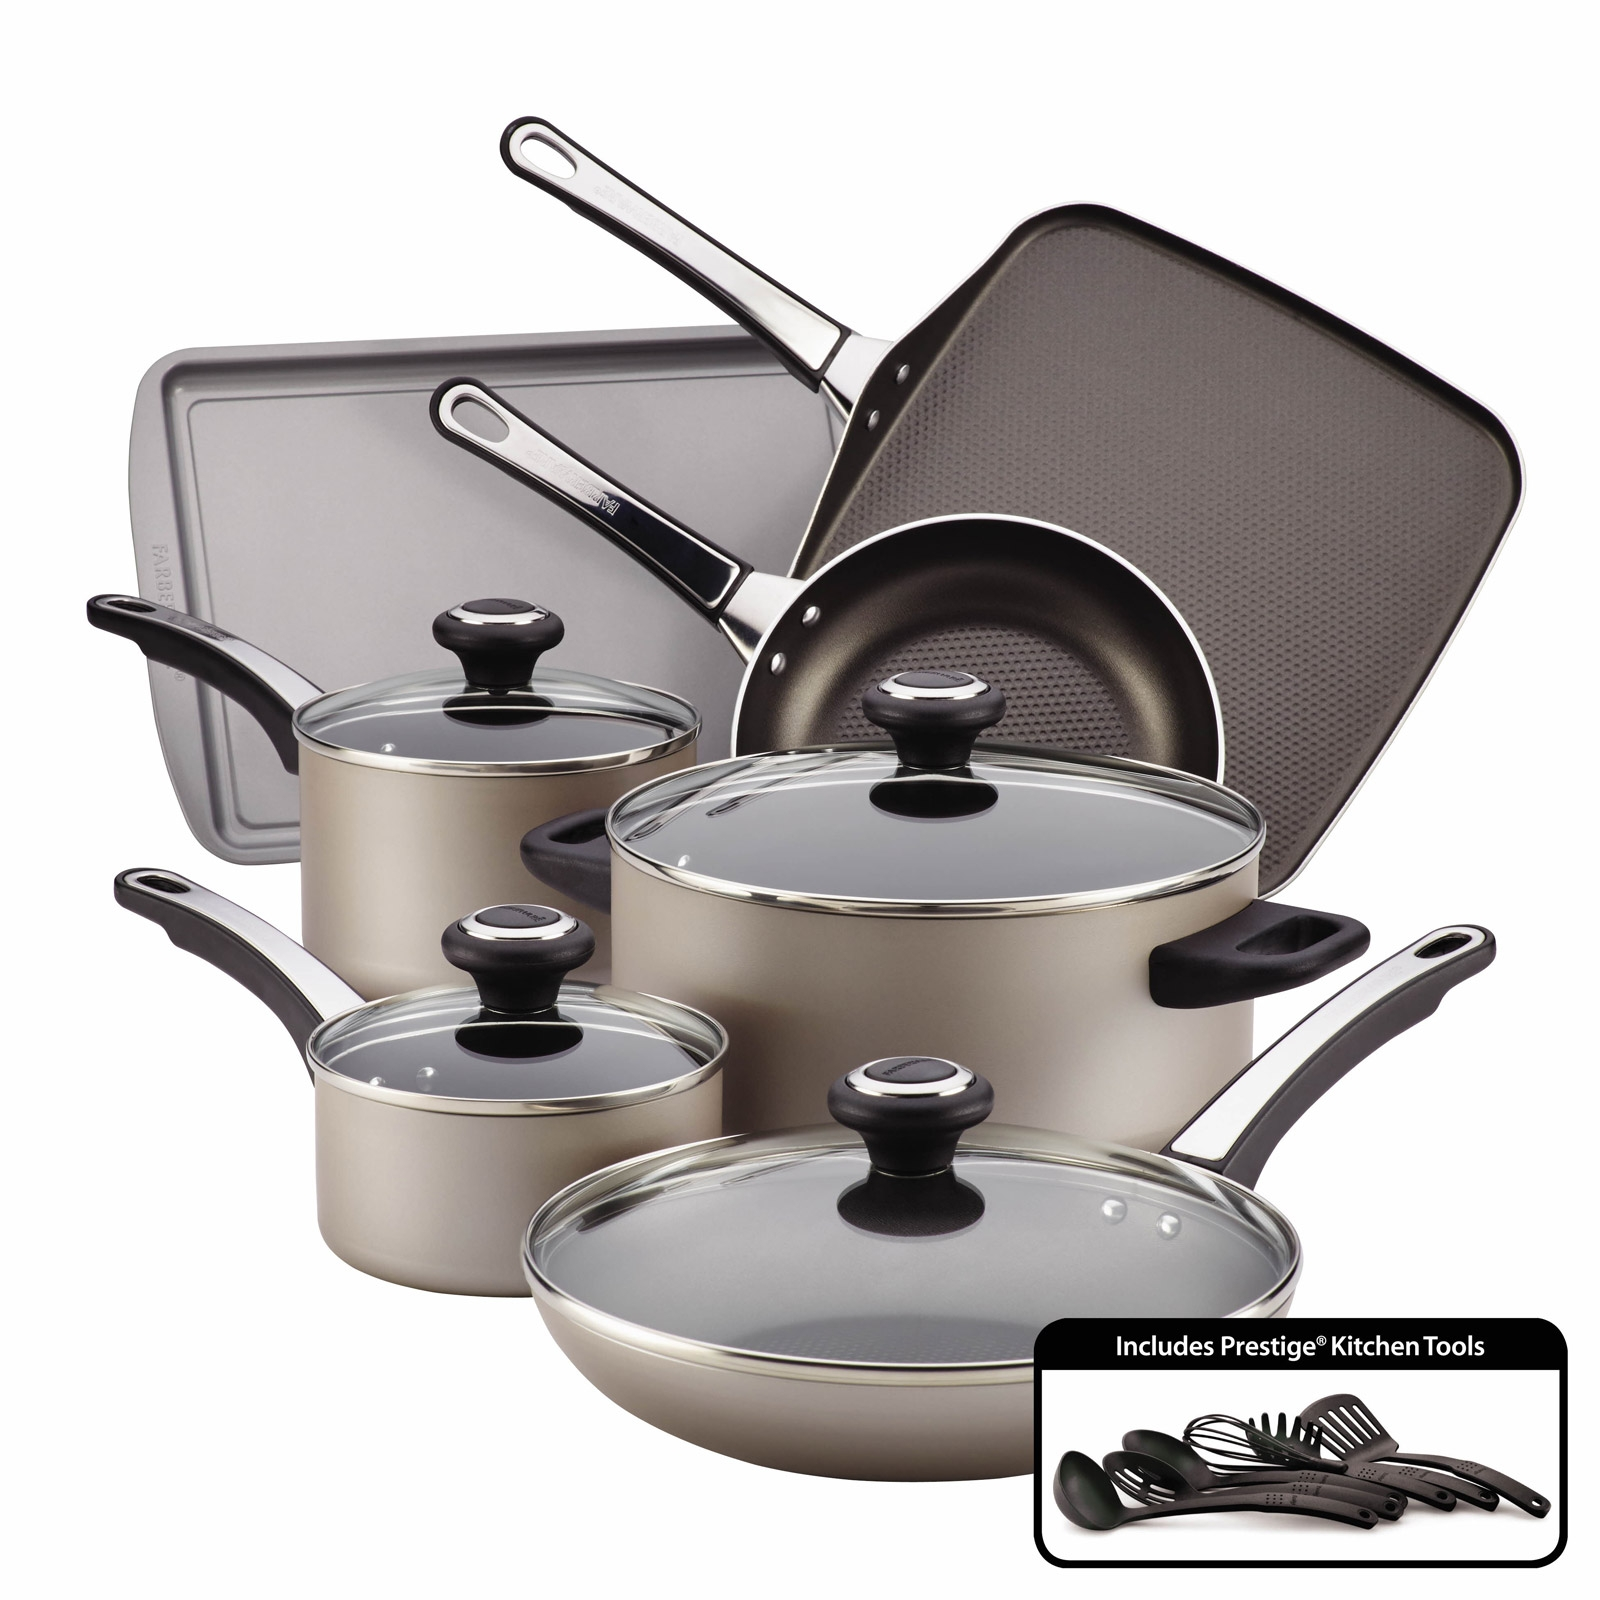 Farberware Complete Kitchen Set1600 X 1600